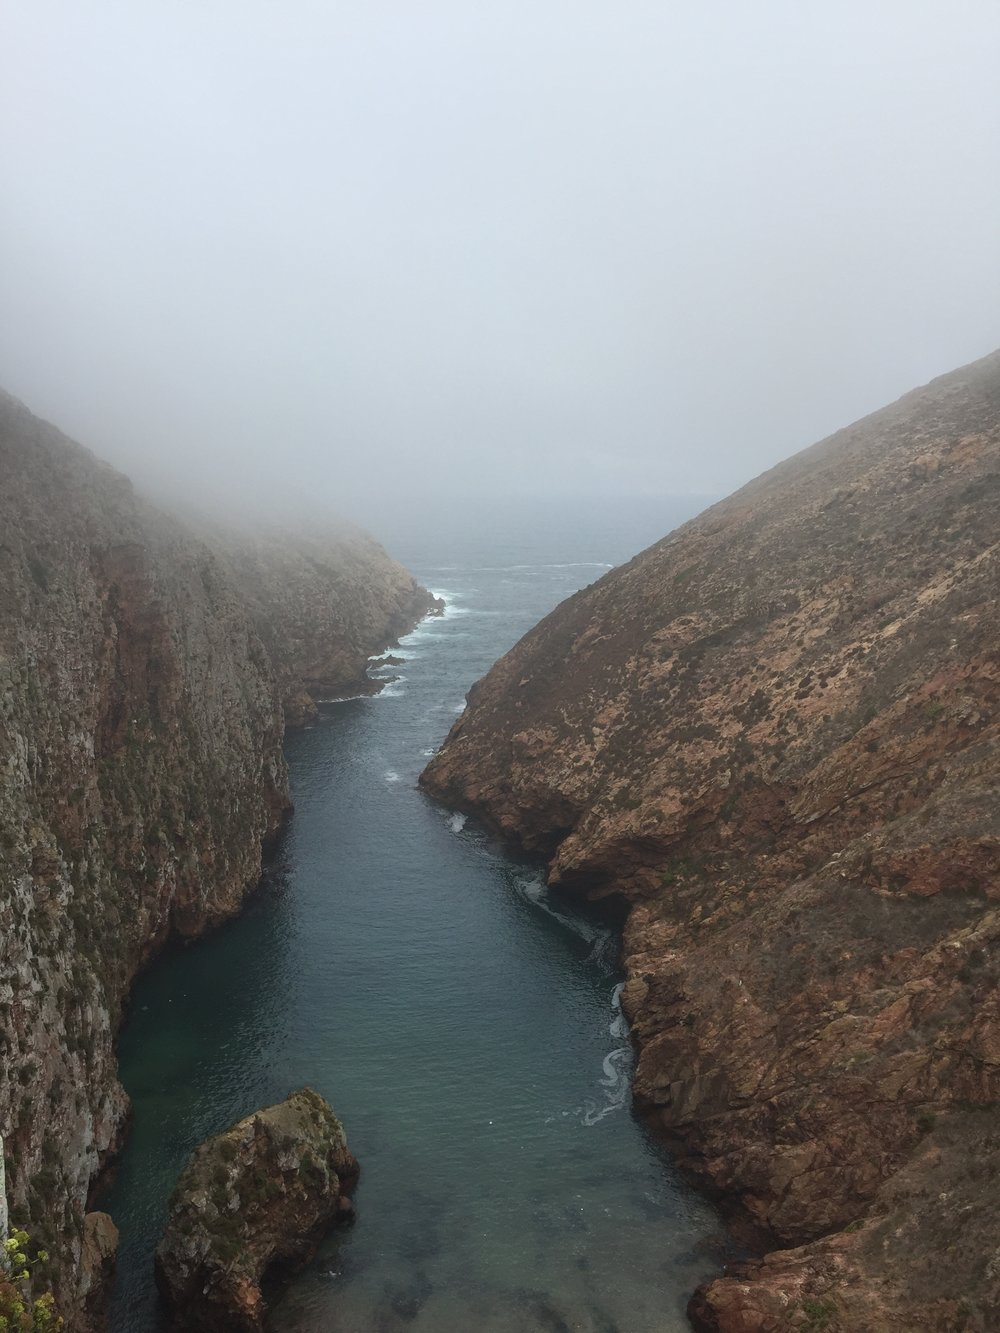 The misty and blustery start to Berlenga Island